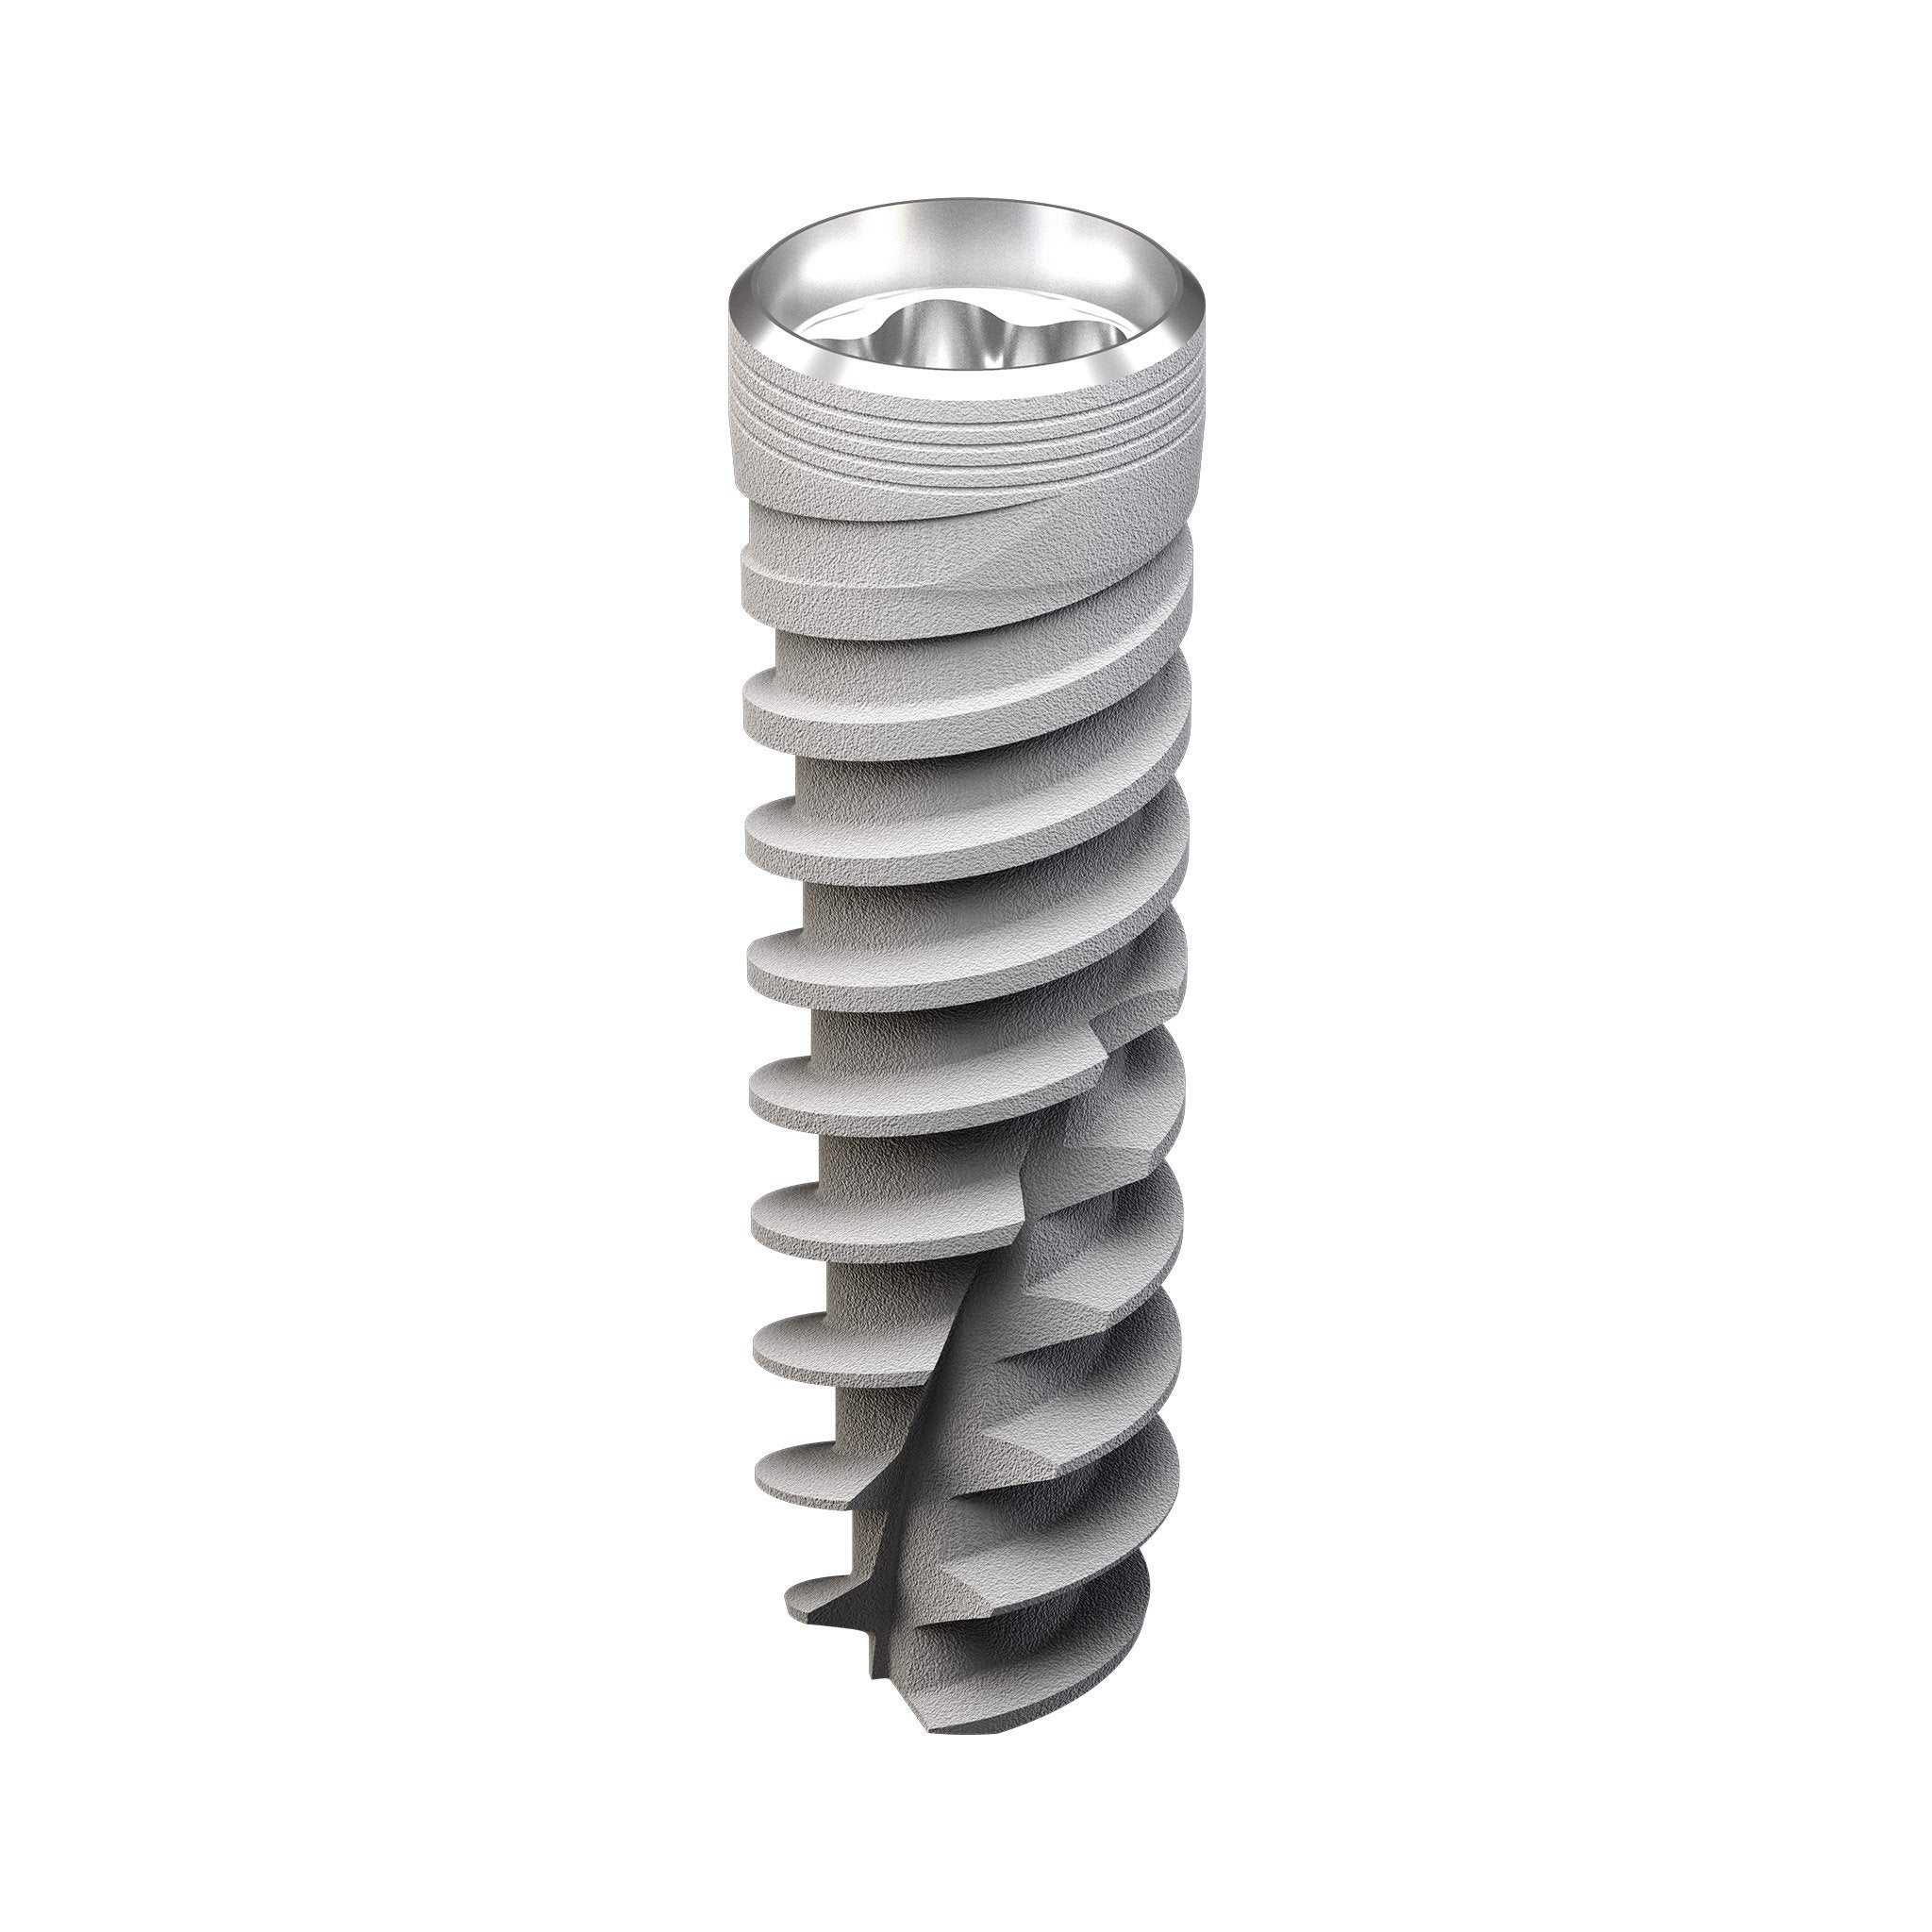 Prima Plus™ Implant RD Ø 4.1 x 11.5mm | K3